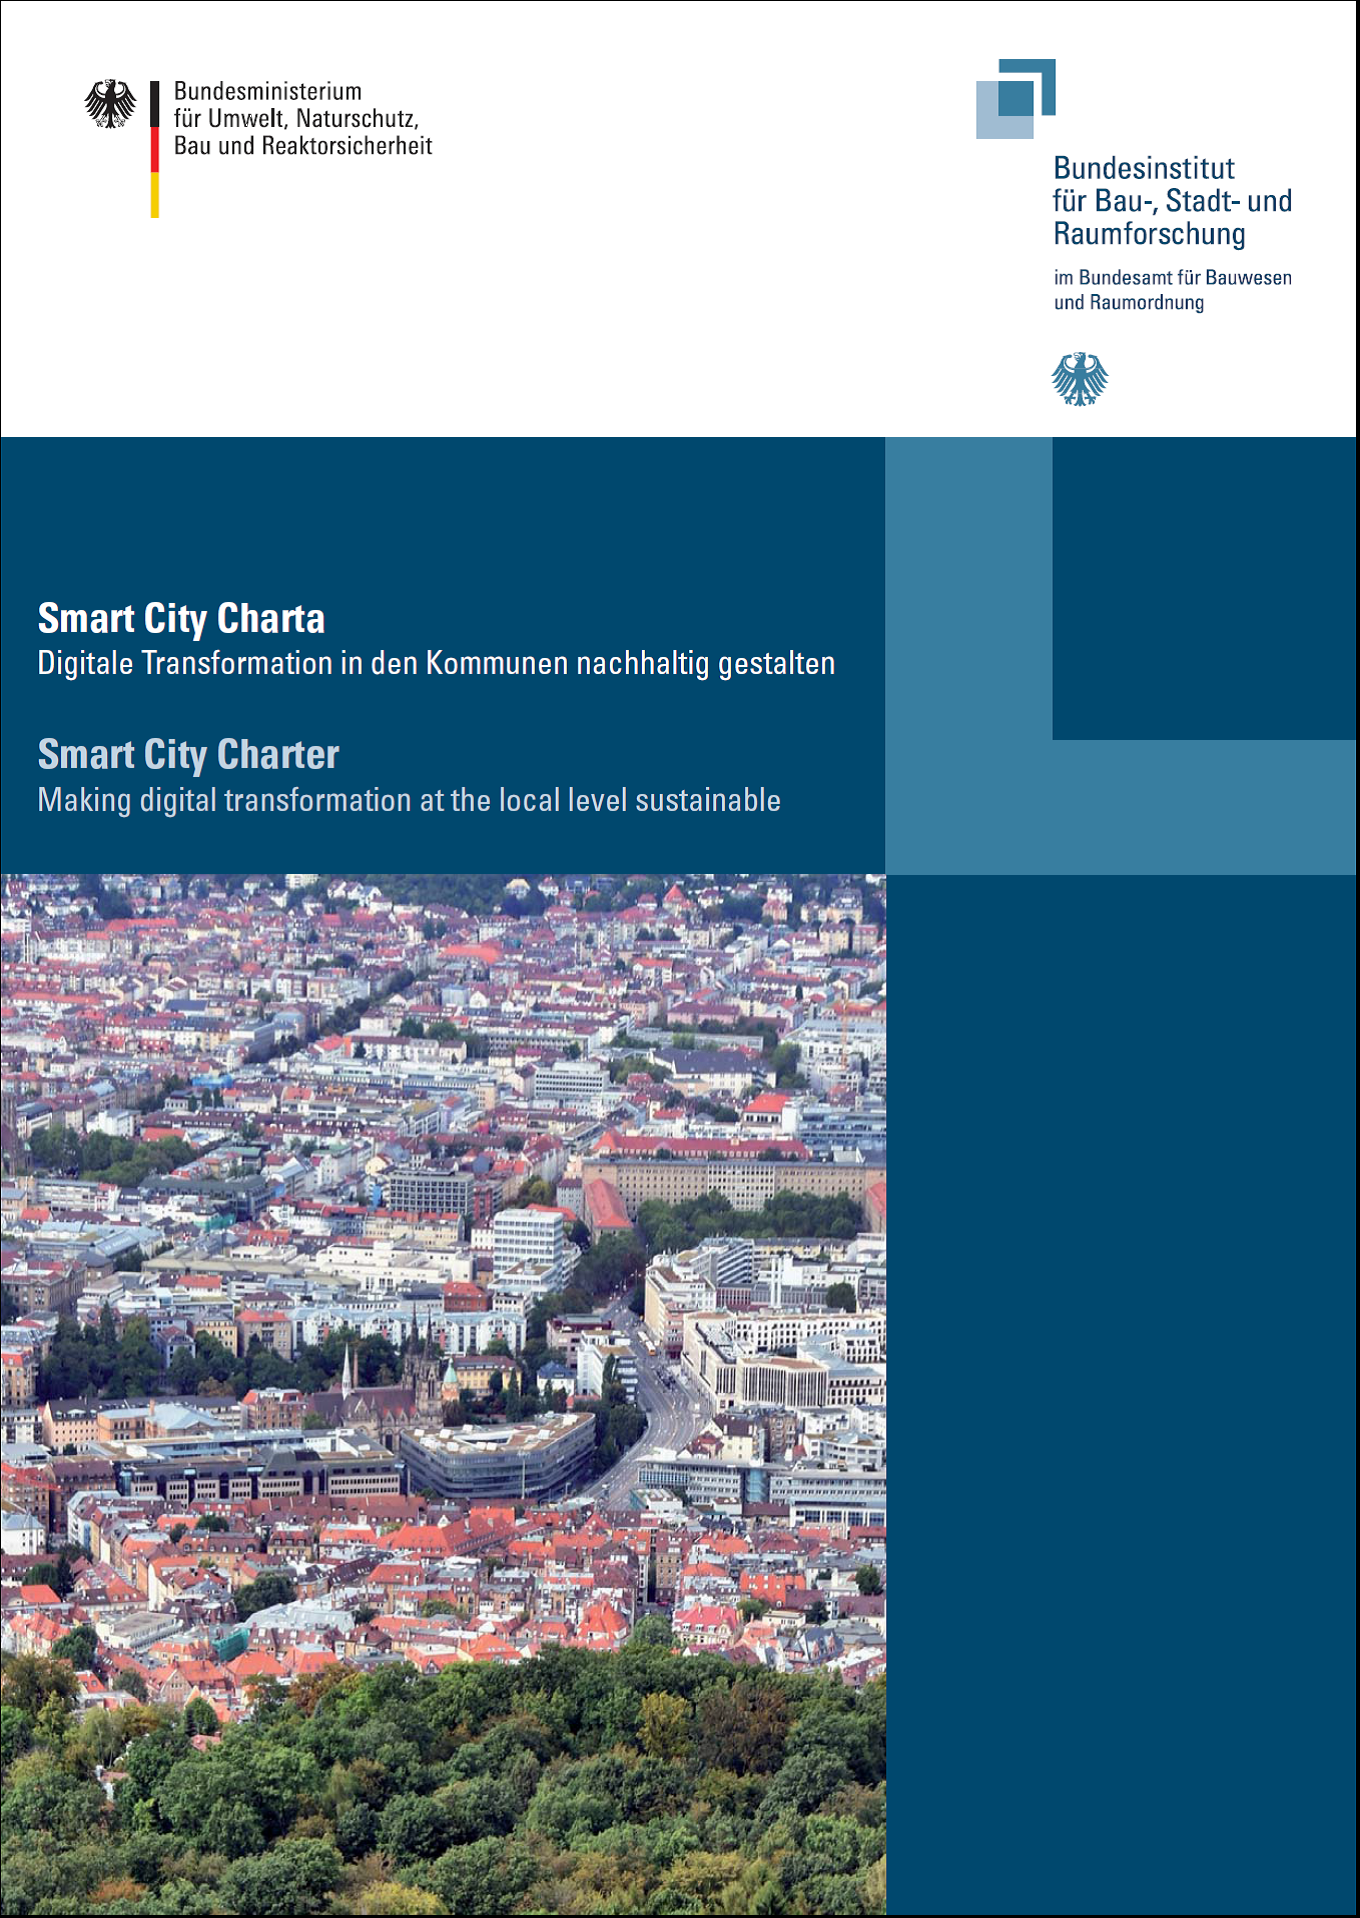 Cover: BBSR: Smart City Charta - Digitale Transformation in den Kommunen nachhaltig gestalten